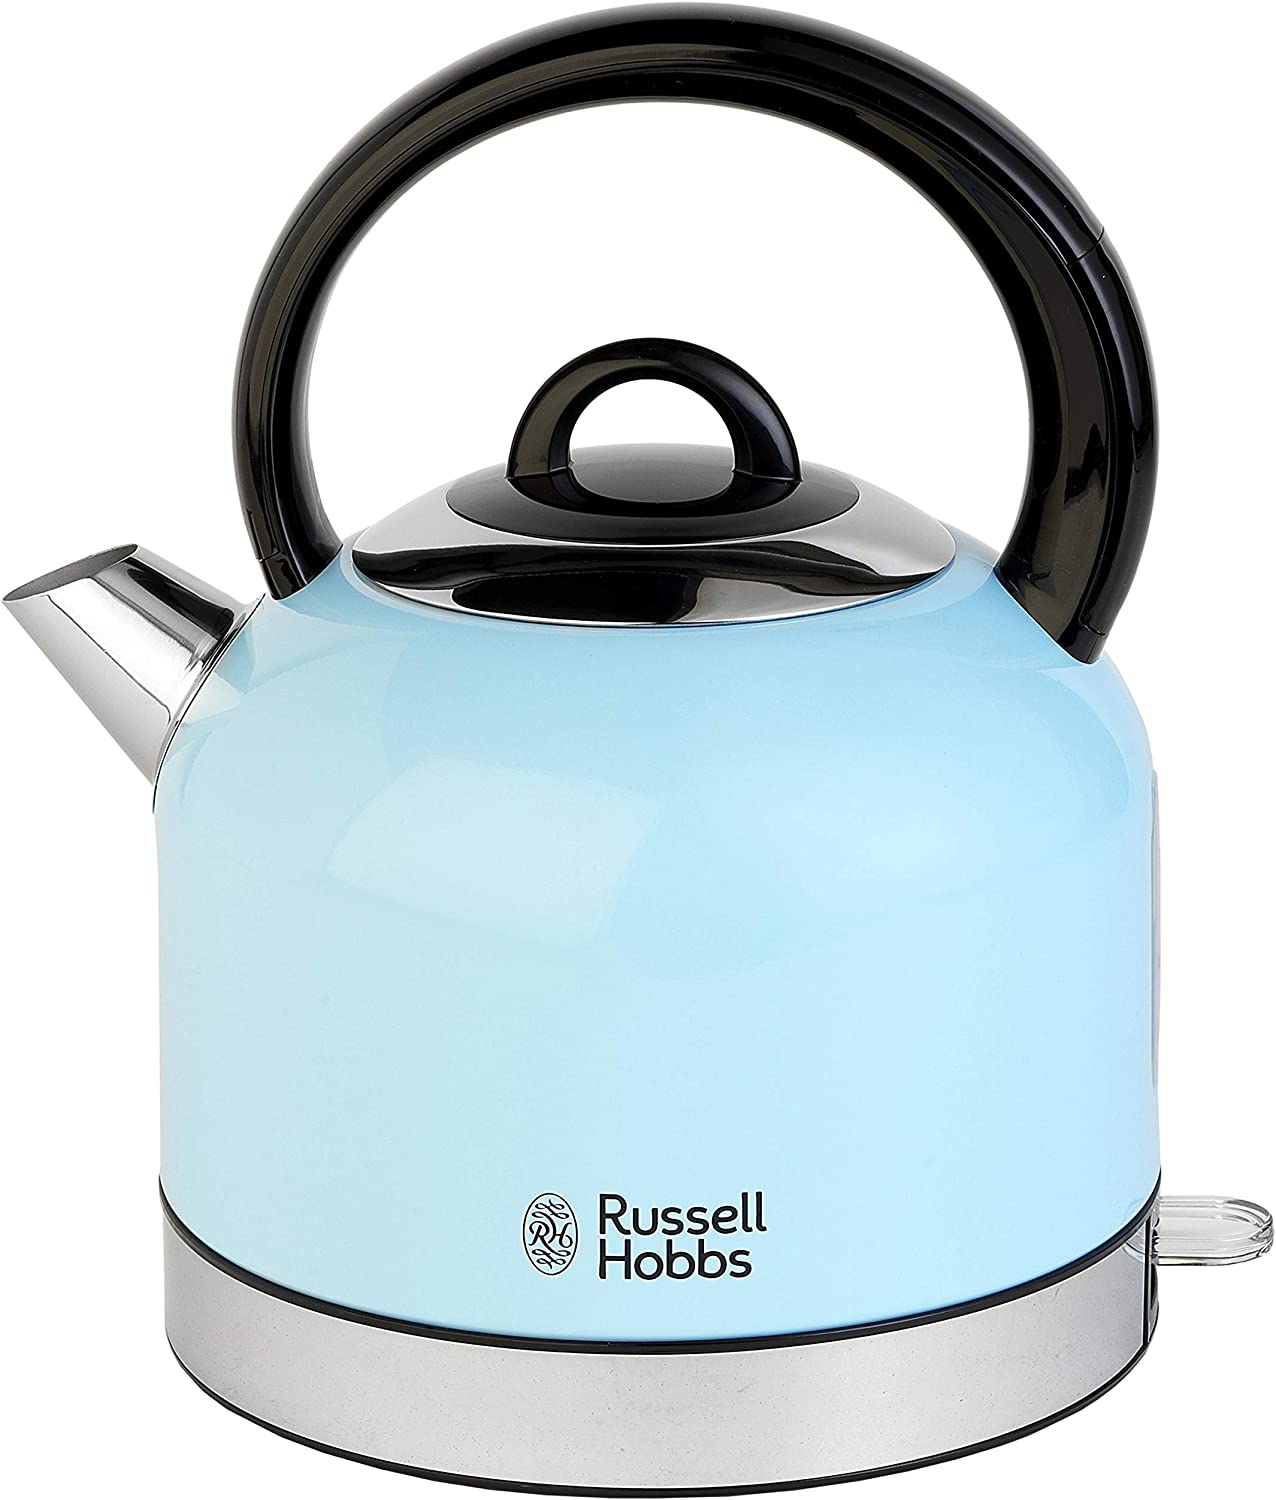 Russell Hobbs Oslo Kitchenware: 1.5L